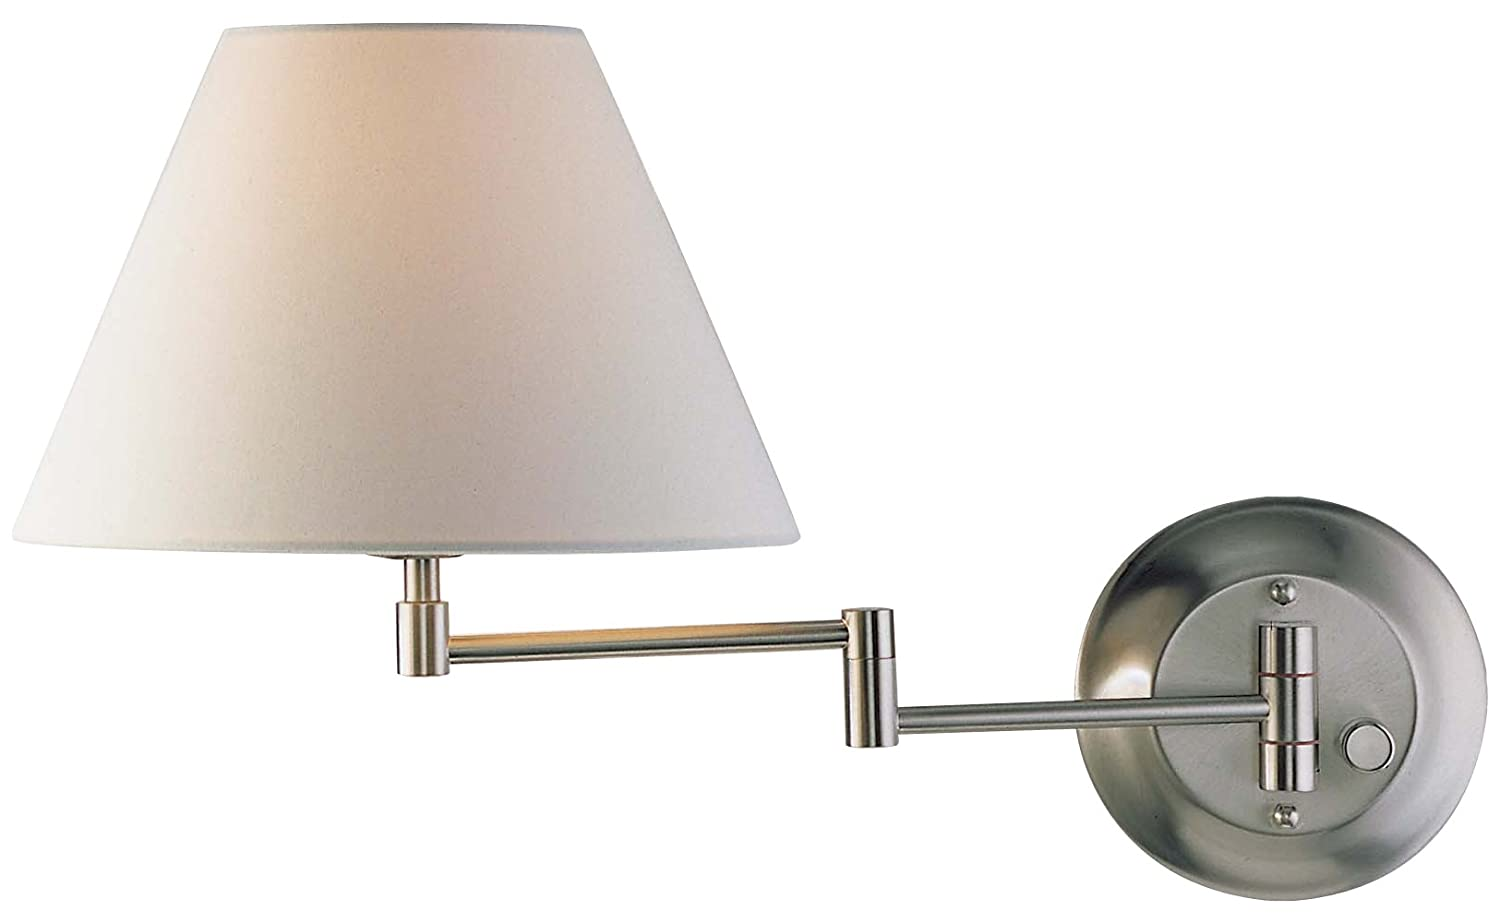 Holtkoetter Swing Arm Wall Sconce with Fabric Shade Satin Nickel with Satin White Shade Wall ...